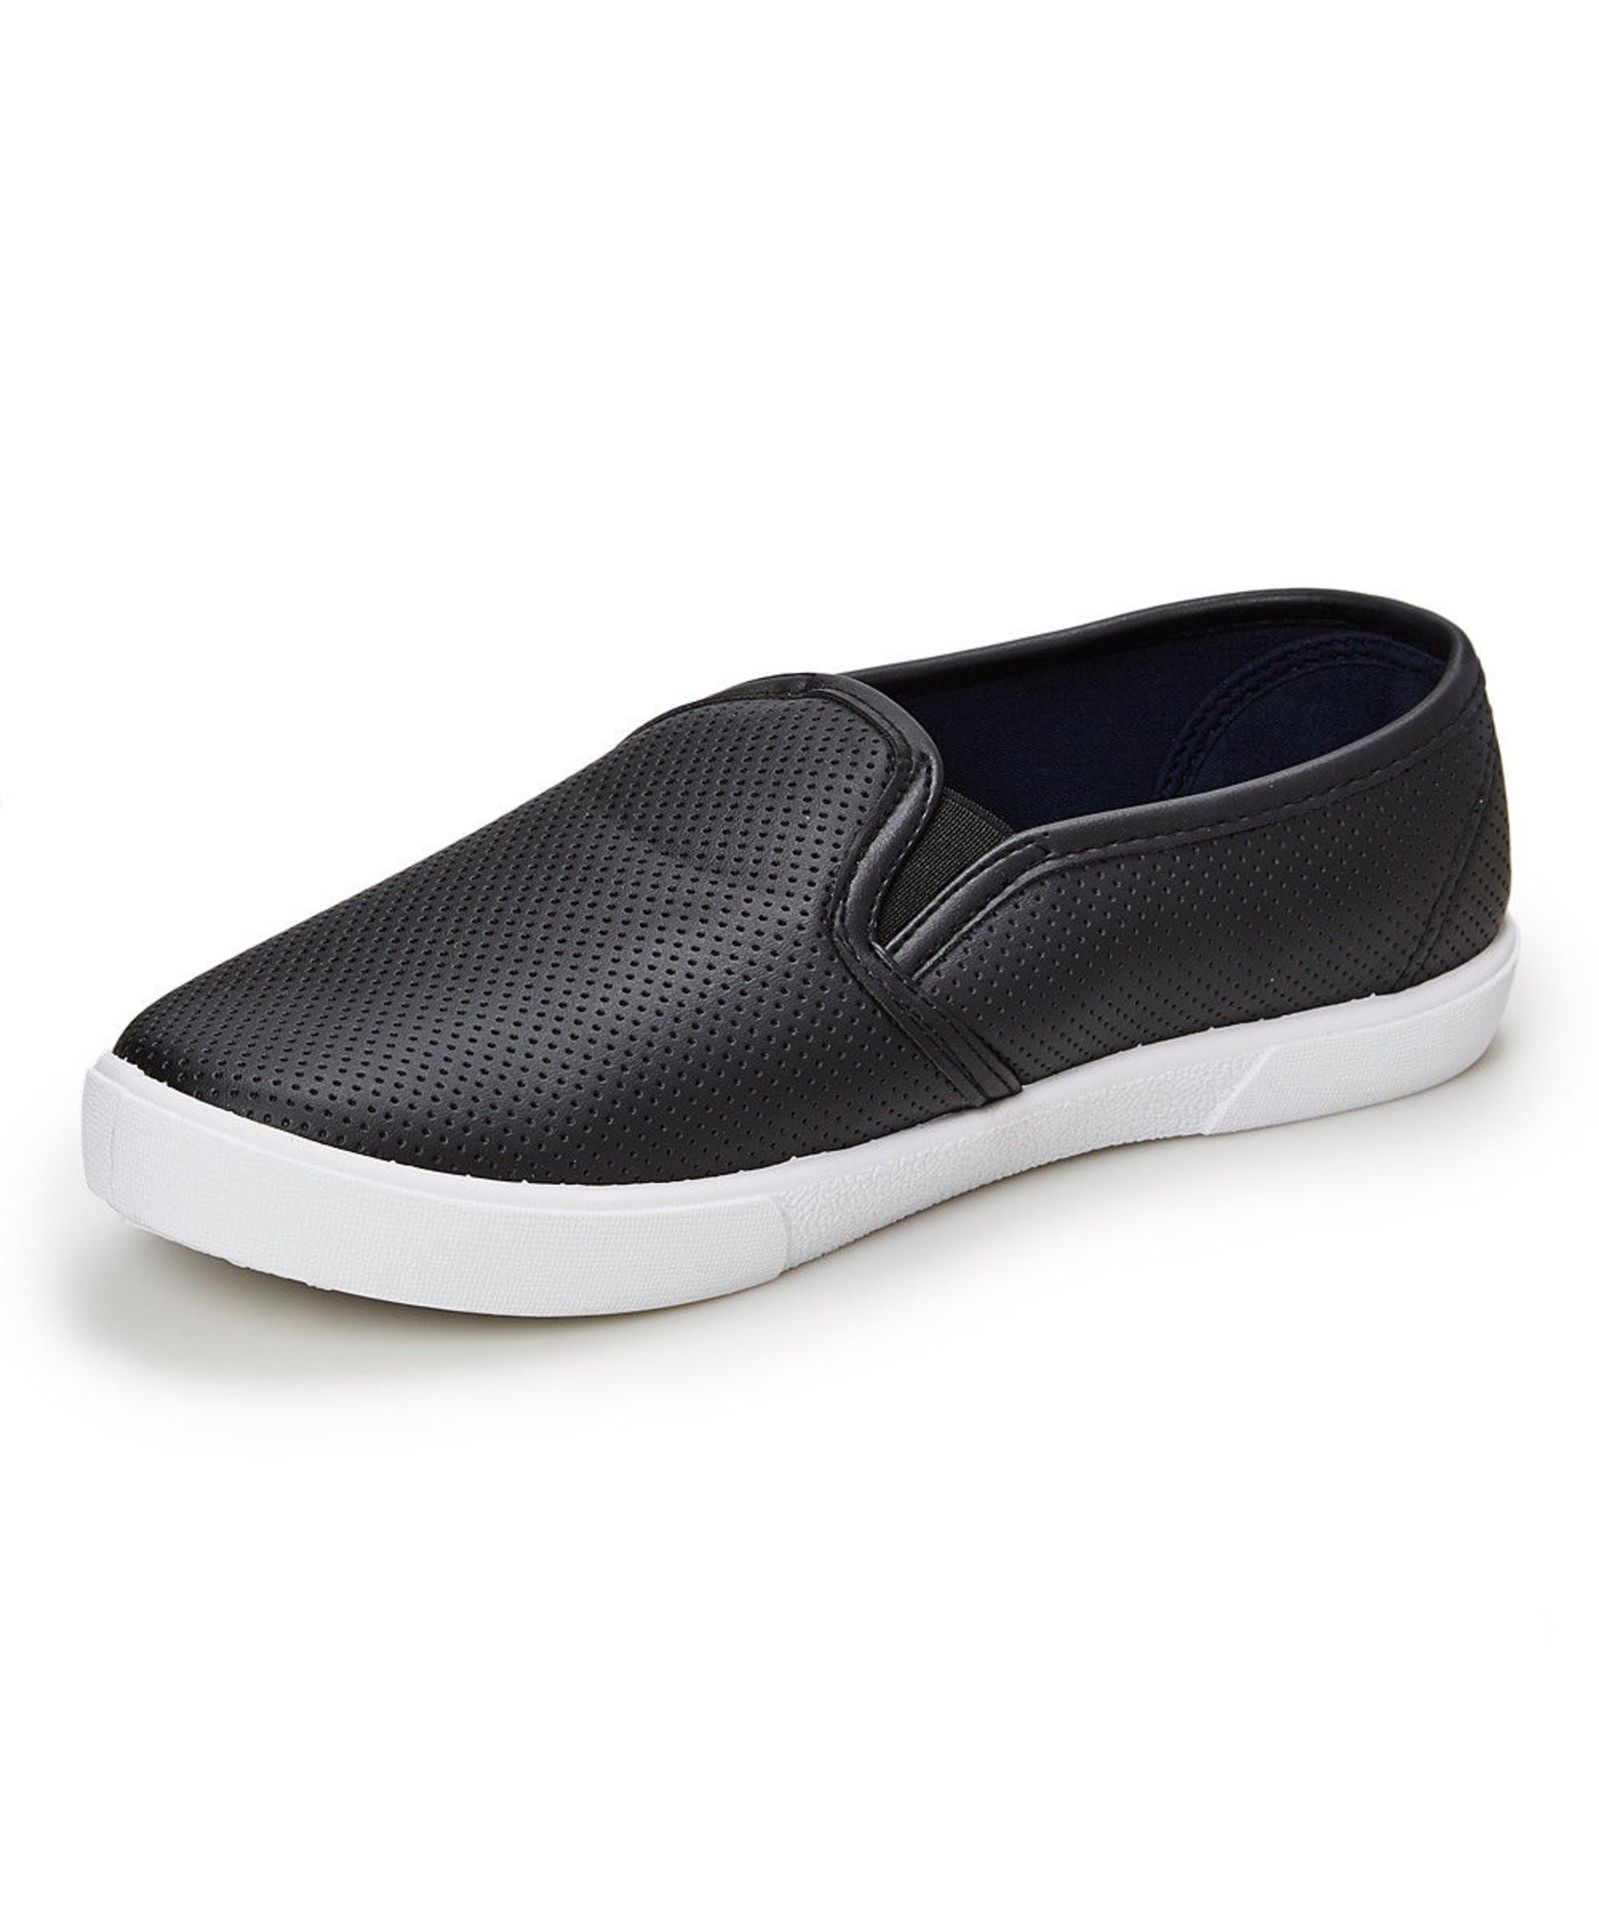 Lot 11 - Aéropostale Black Perforated Slip-On Sneaker (Uk Size:4.5/Us Size:7) (New Without Box) [Ref: